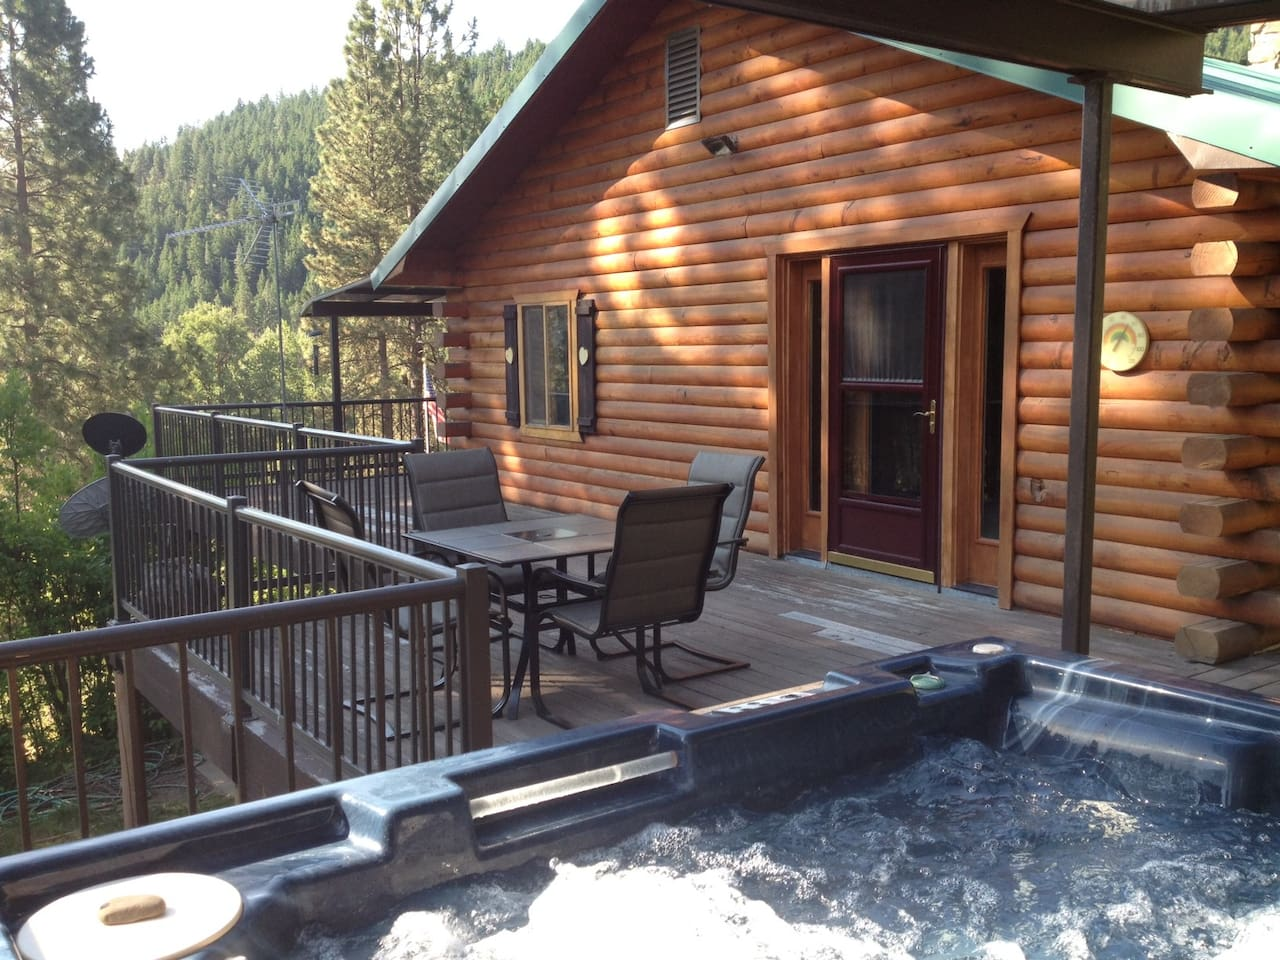 rooms united states rent for cabin original log in wa washington pass to near leavenworth stevens cabins